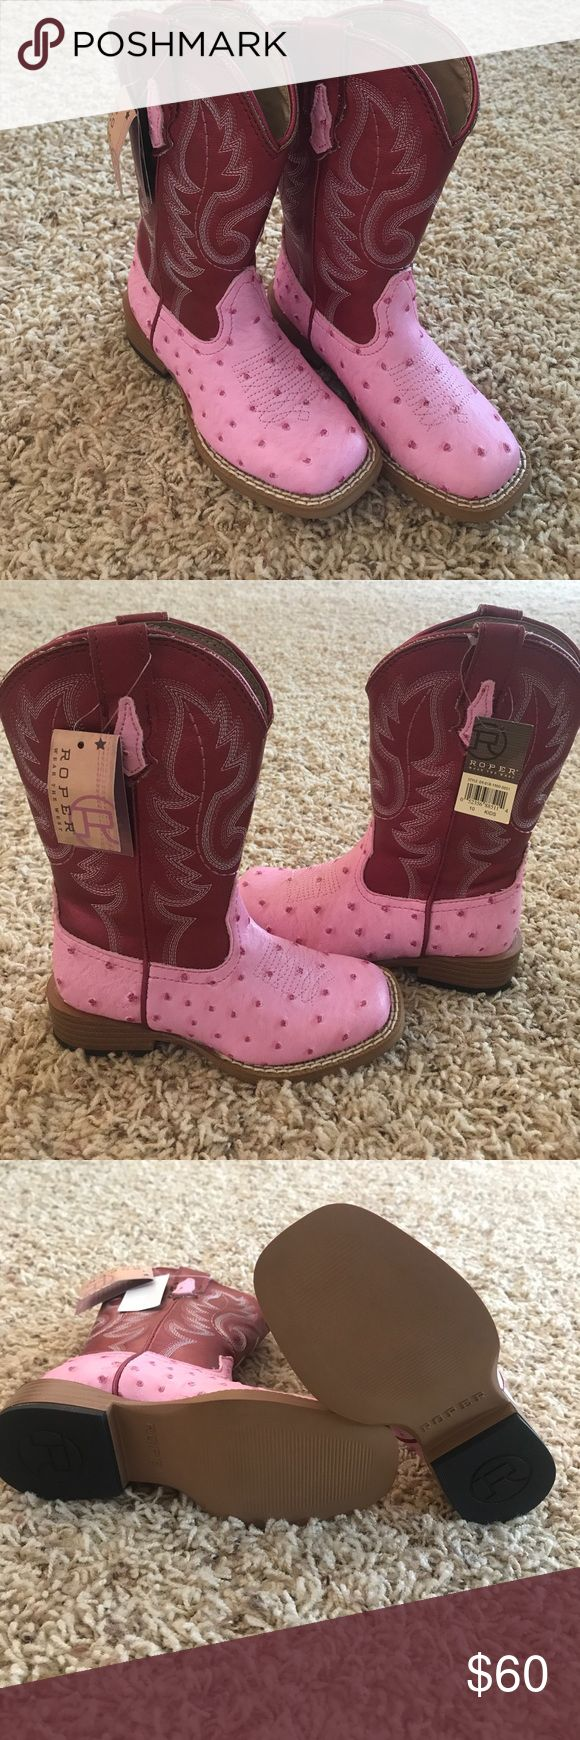 Kids Justin Roper boots Brand new kids boots!! Given as a gift and wrong size so never worn. Pink ostrich bottoms with red tops. Justin Boots Shoes Boots